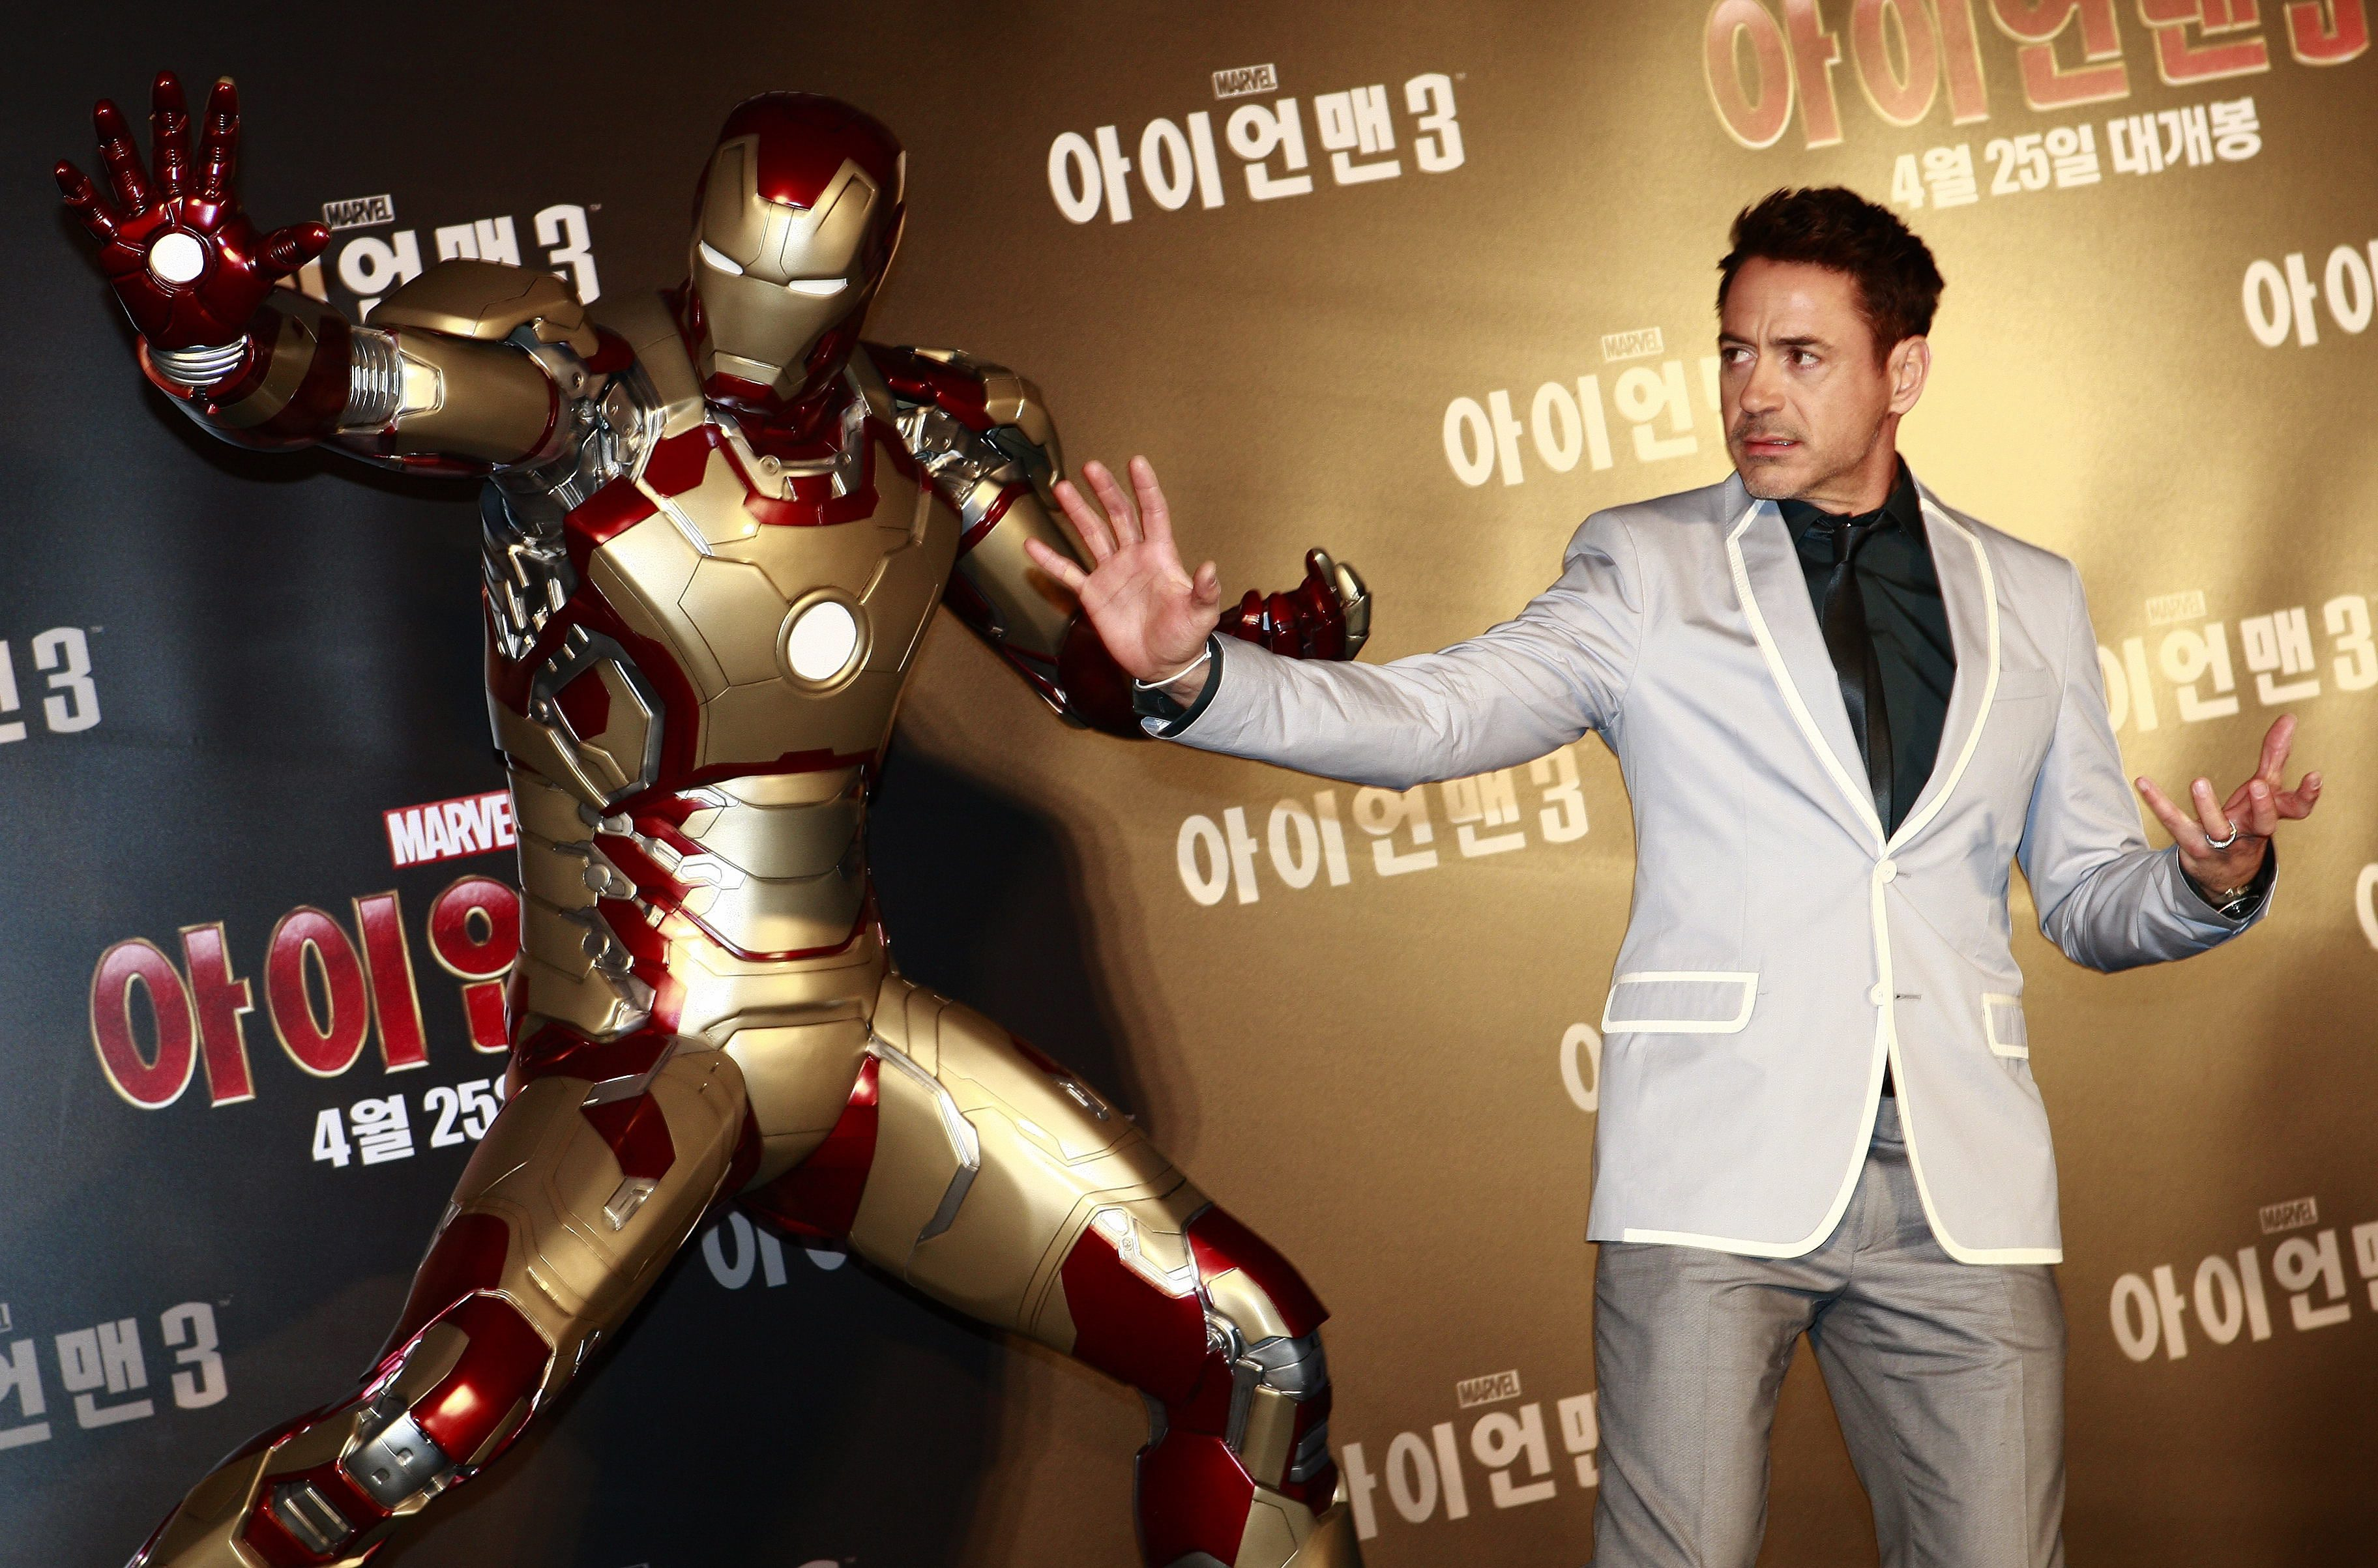 Robert Downey Jr reveals 'crazy' $50 million pay cheque for The Avengers